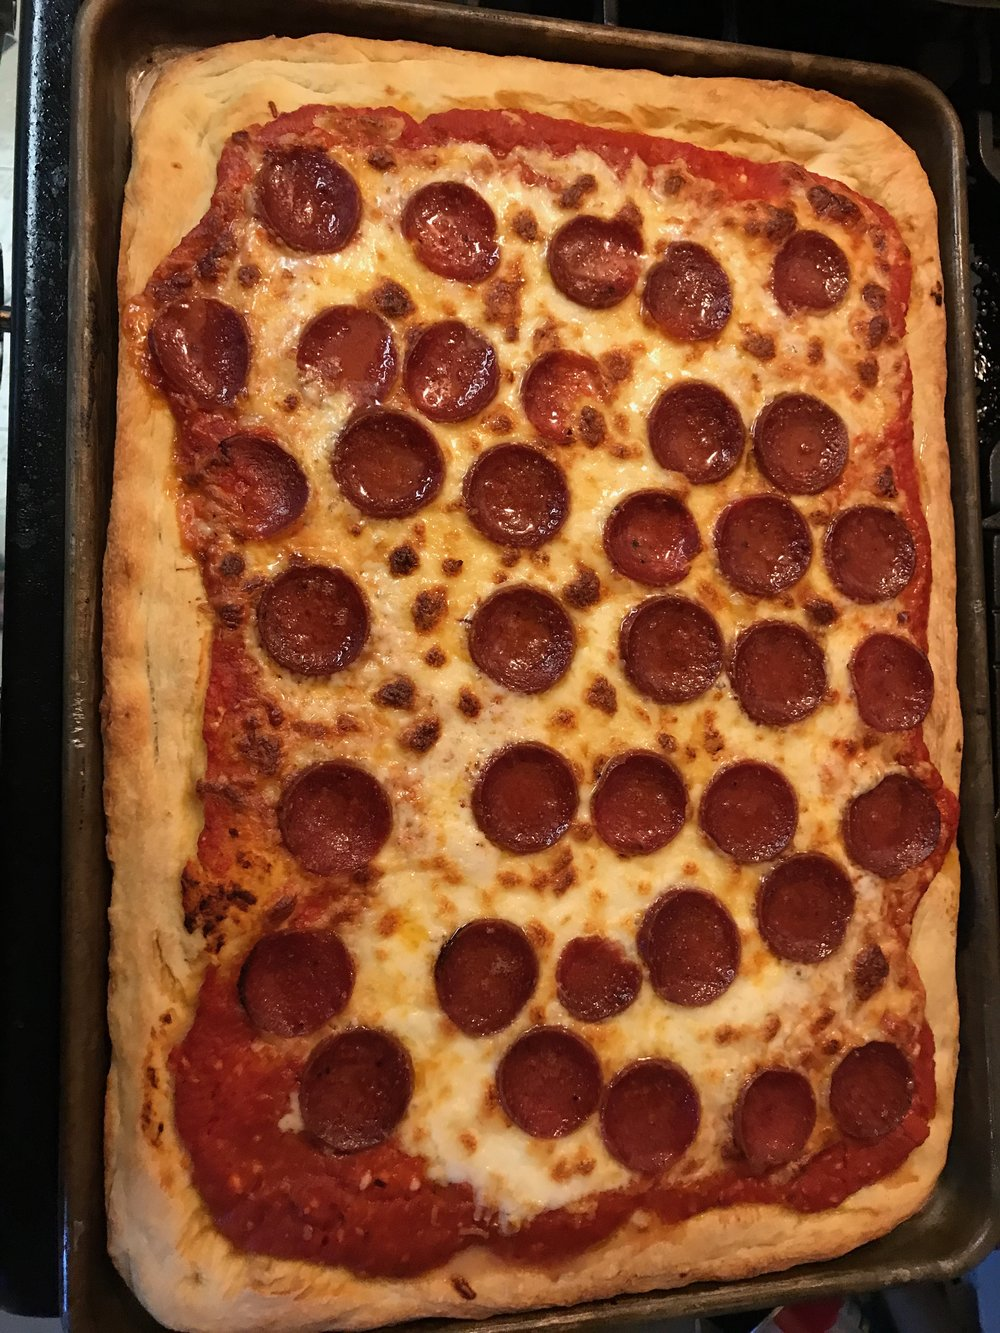 Pizza just out of the oven